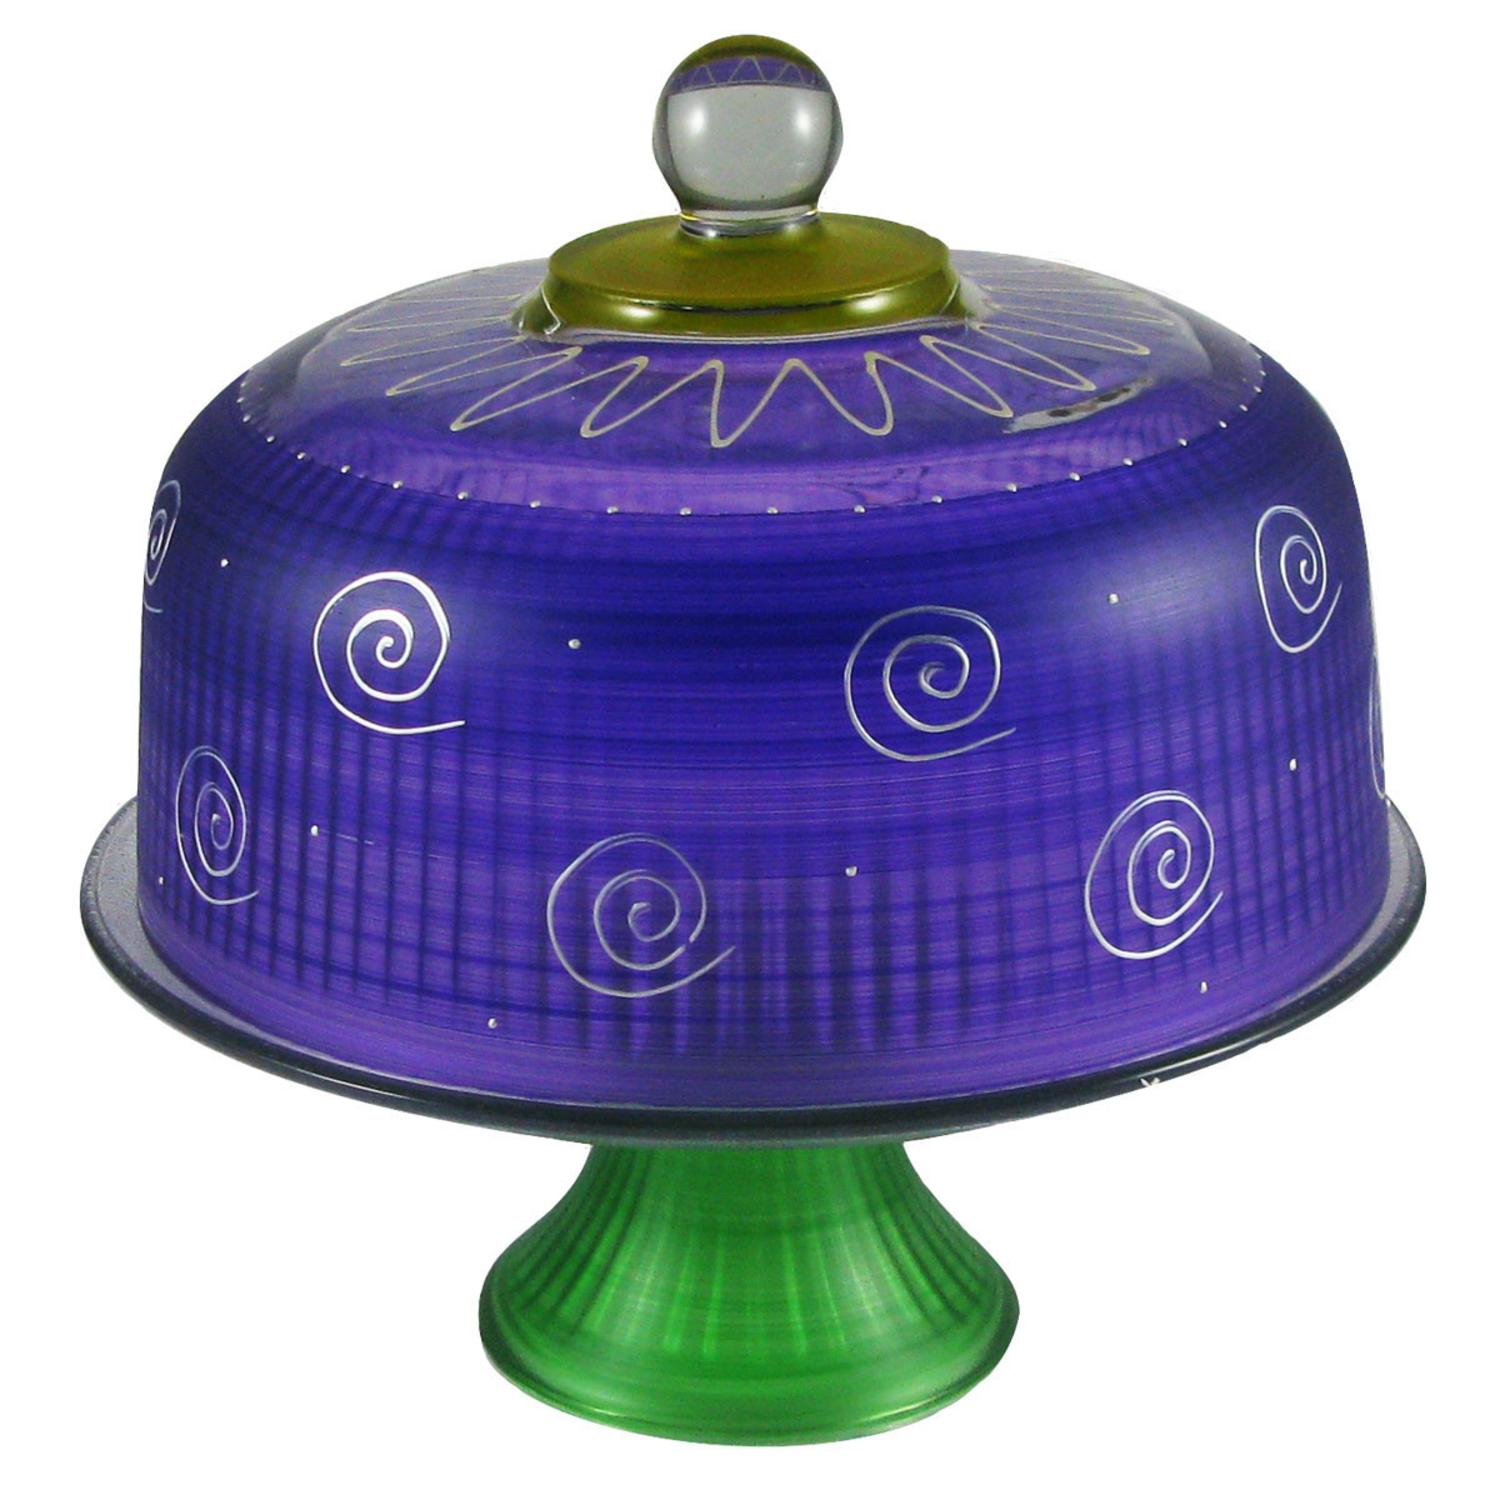 Frosted Purple and White Hand Painted Glass Convertible Cake Dome 11""